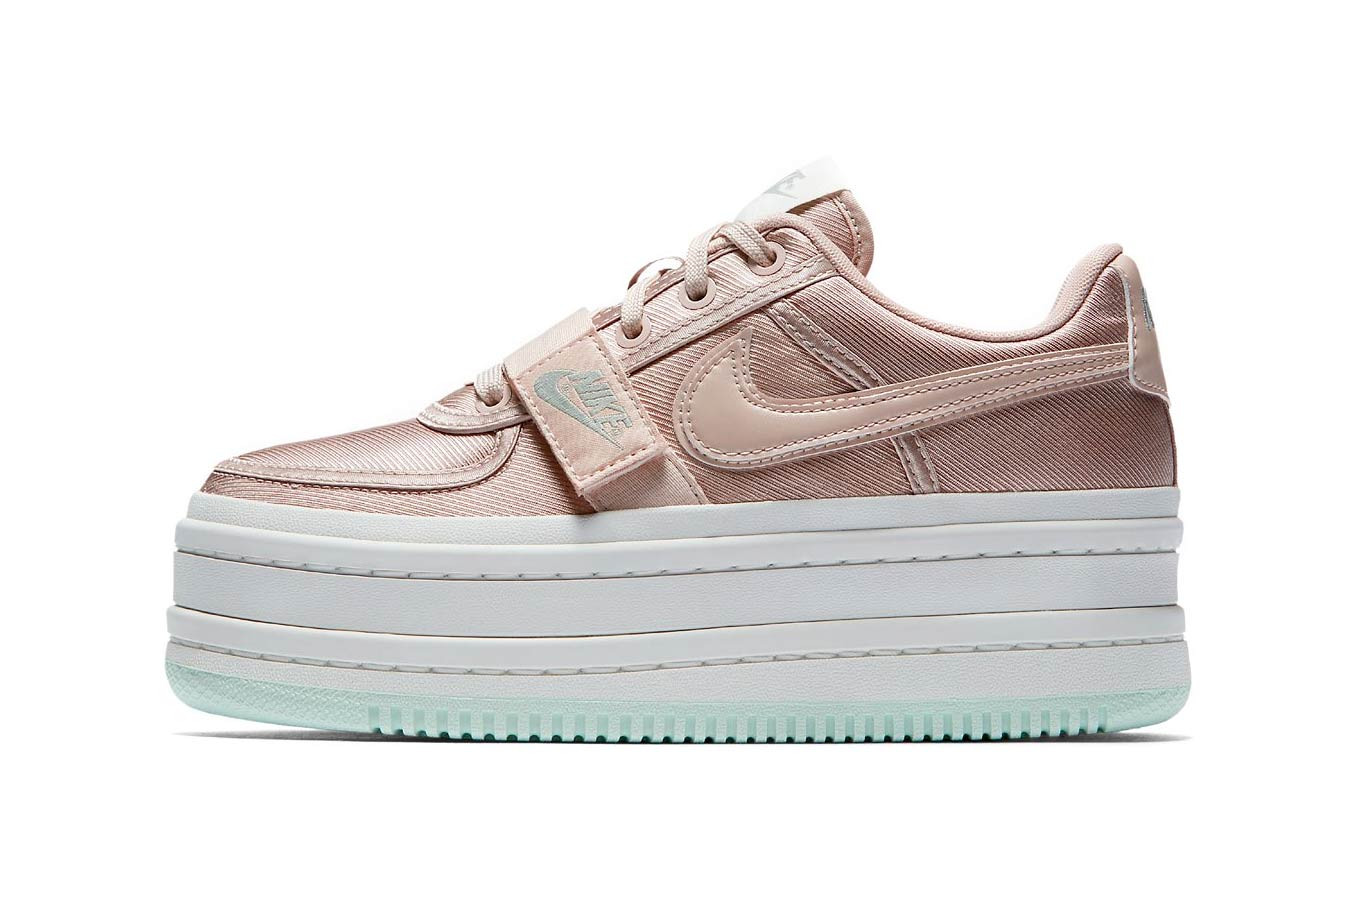 Nike's Vandal Surprise in Pink and Blue